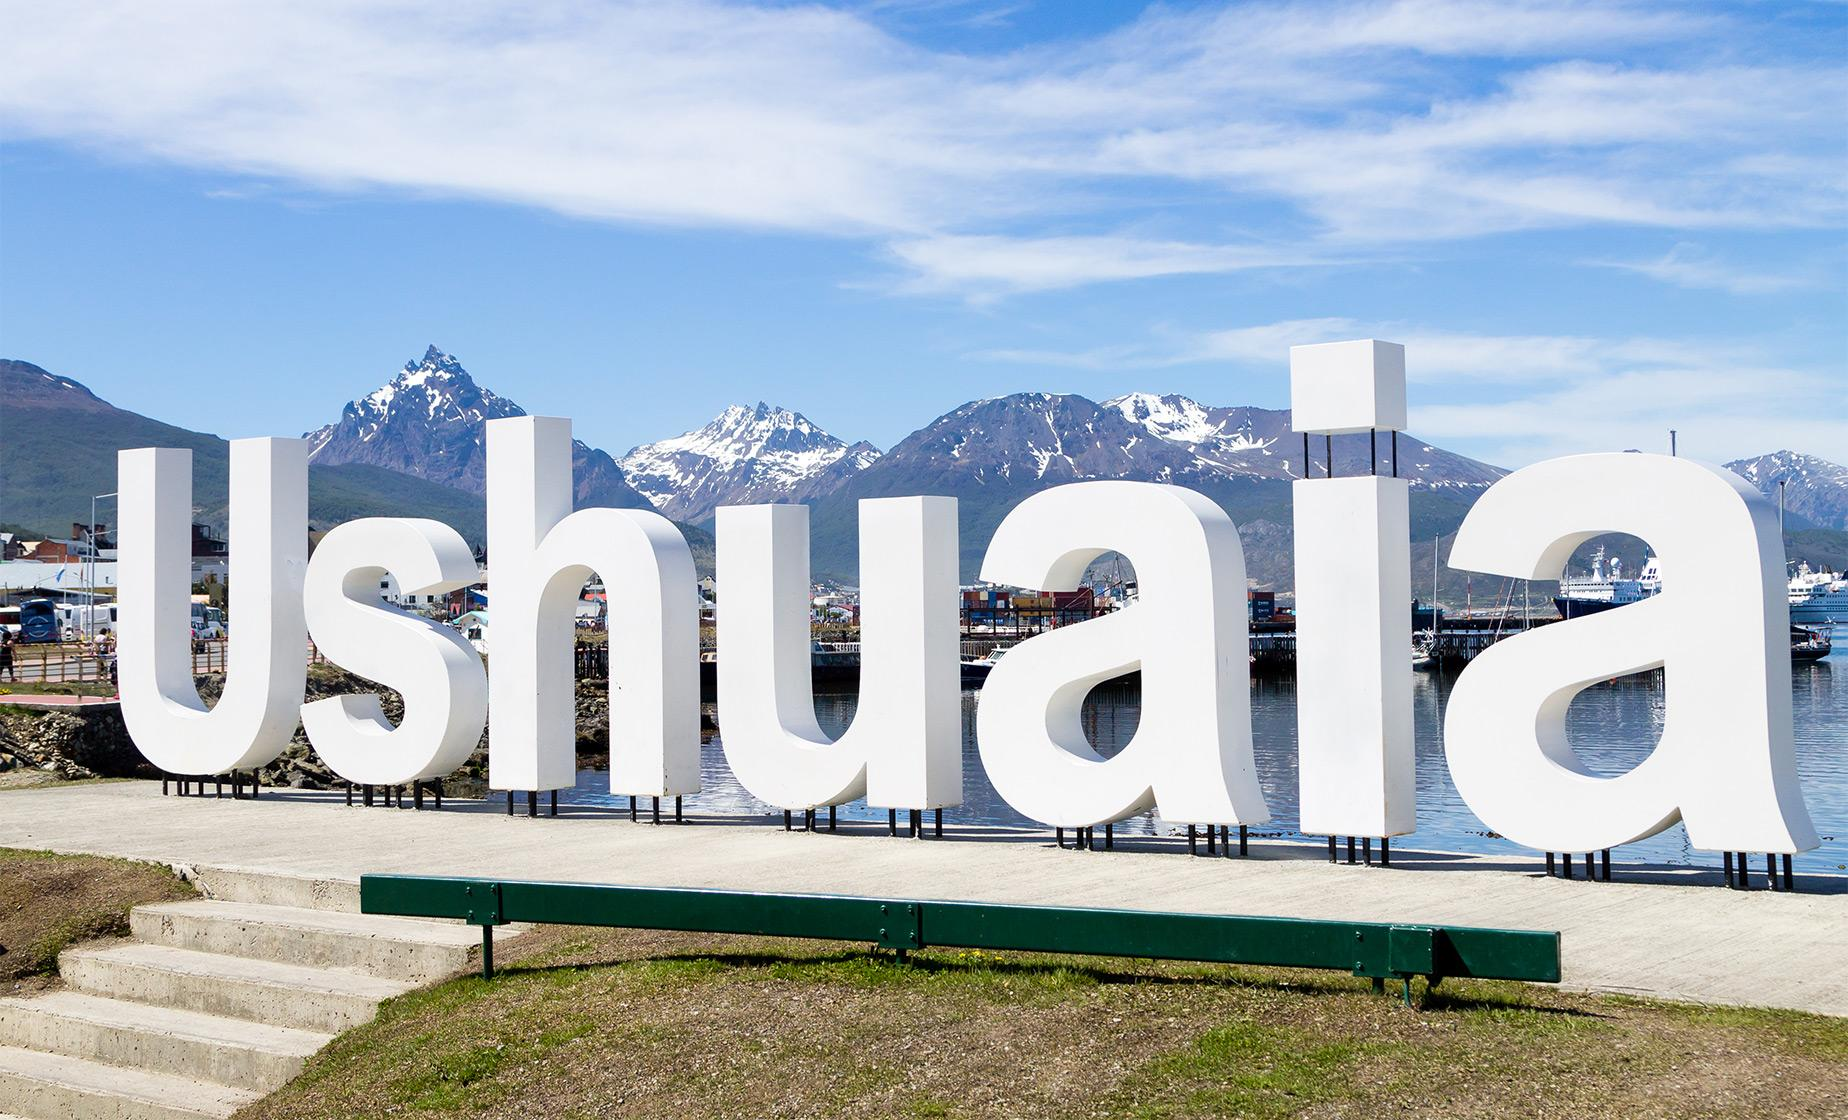 Ushuaia on Double Decker Bus Tour (Centenary Park, Avenida Maipu)